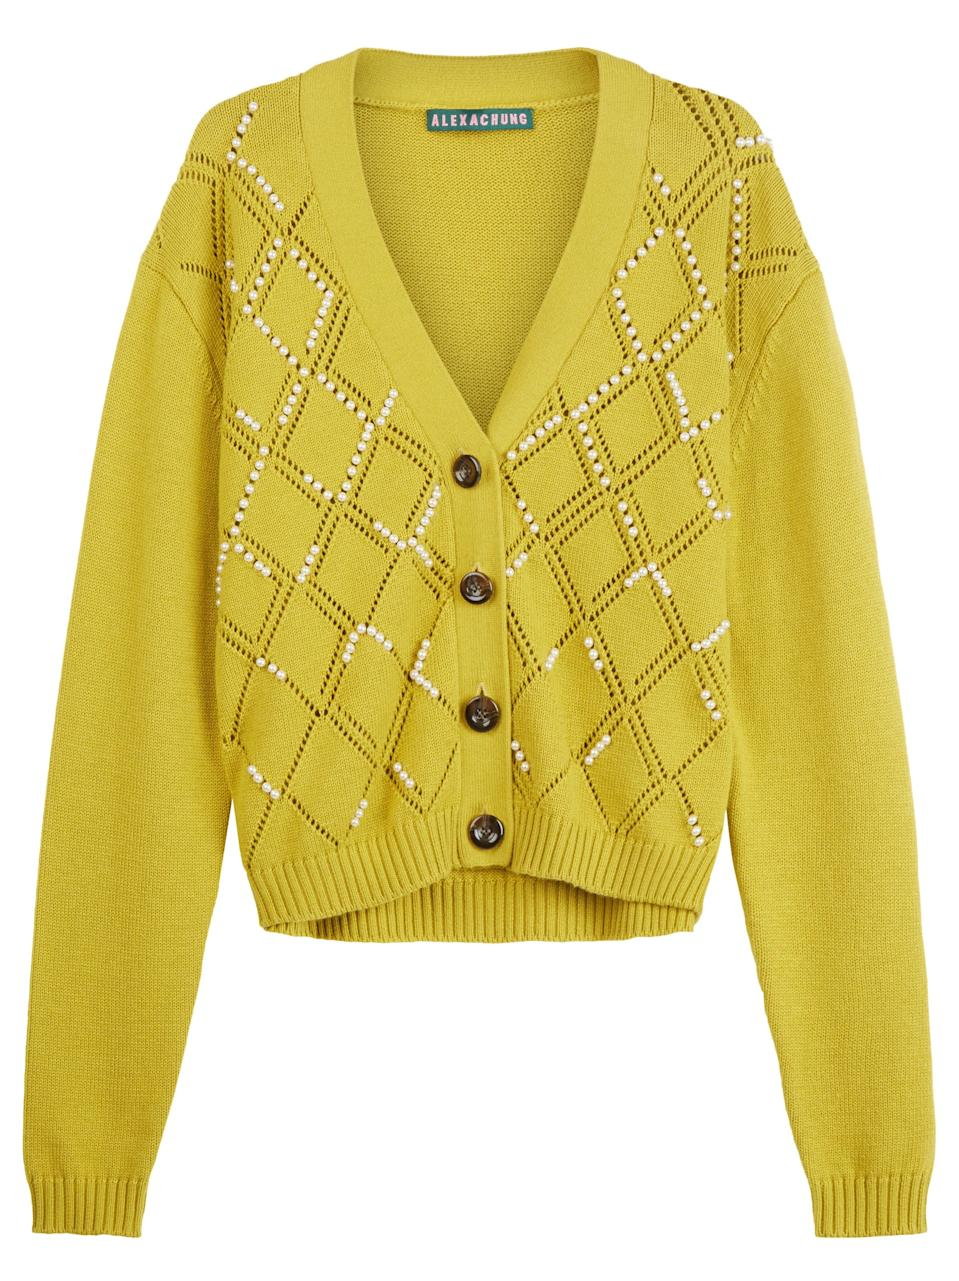 """<br><br><strong>Alexa Chung</strong> Embroidered Cardigan, $, available at <a href=""""https://www.alexachung.com/uk/r20embroidered-cardiganc3200?utm_source=googleshopping&utm_medium=cpc&utm_campaign=googleshopping&gclid=EAIaIQobChMIvrrjicD_6wIVQud3Ch0ZSgtUEAQYBiABEgLkAPD_BwE&gclsrc=aw.ds"""" rel=""""nofollow noopener"""" target=""""_blank"""" data-ylk=""""slk:Alexa Chung"""" class=""""link rapid-noclick-resp"""">Alexa Chung</a>"""